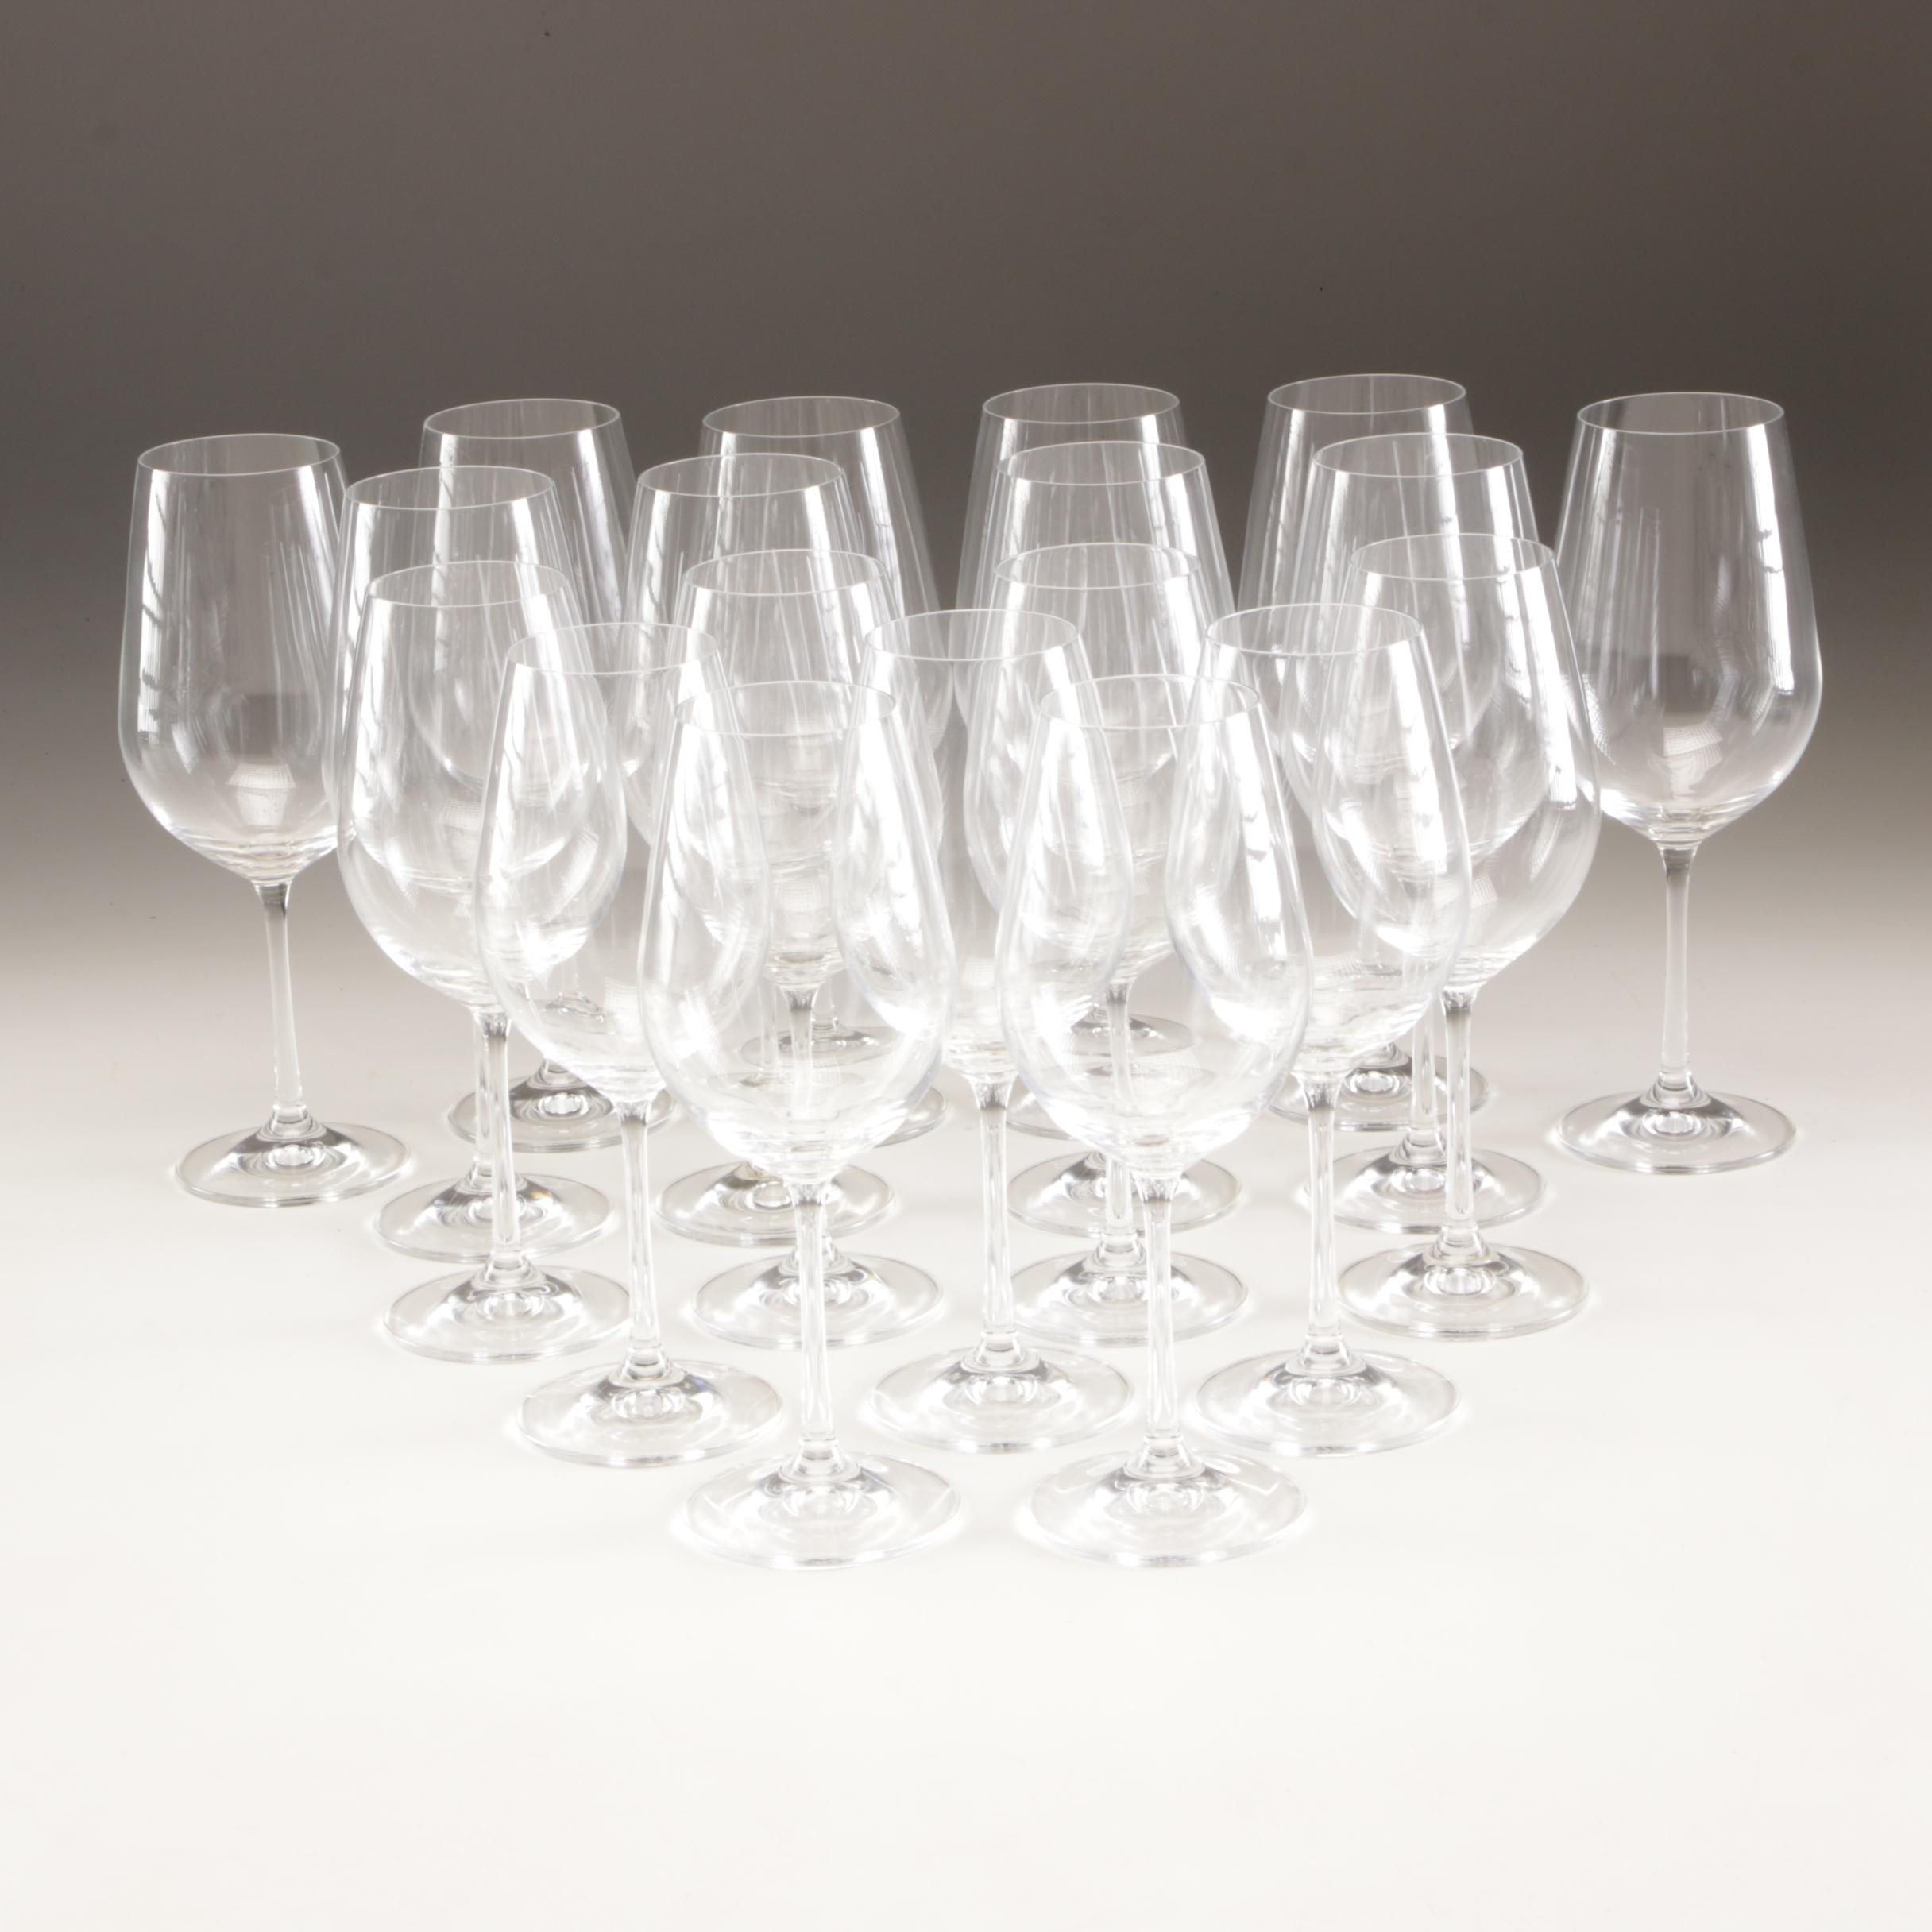 Red Wine and White Wine Stemware by RV